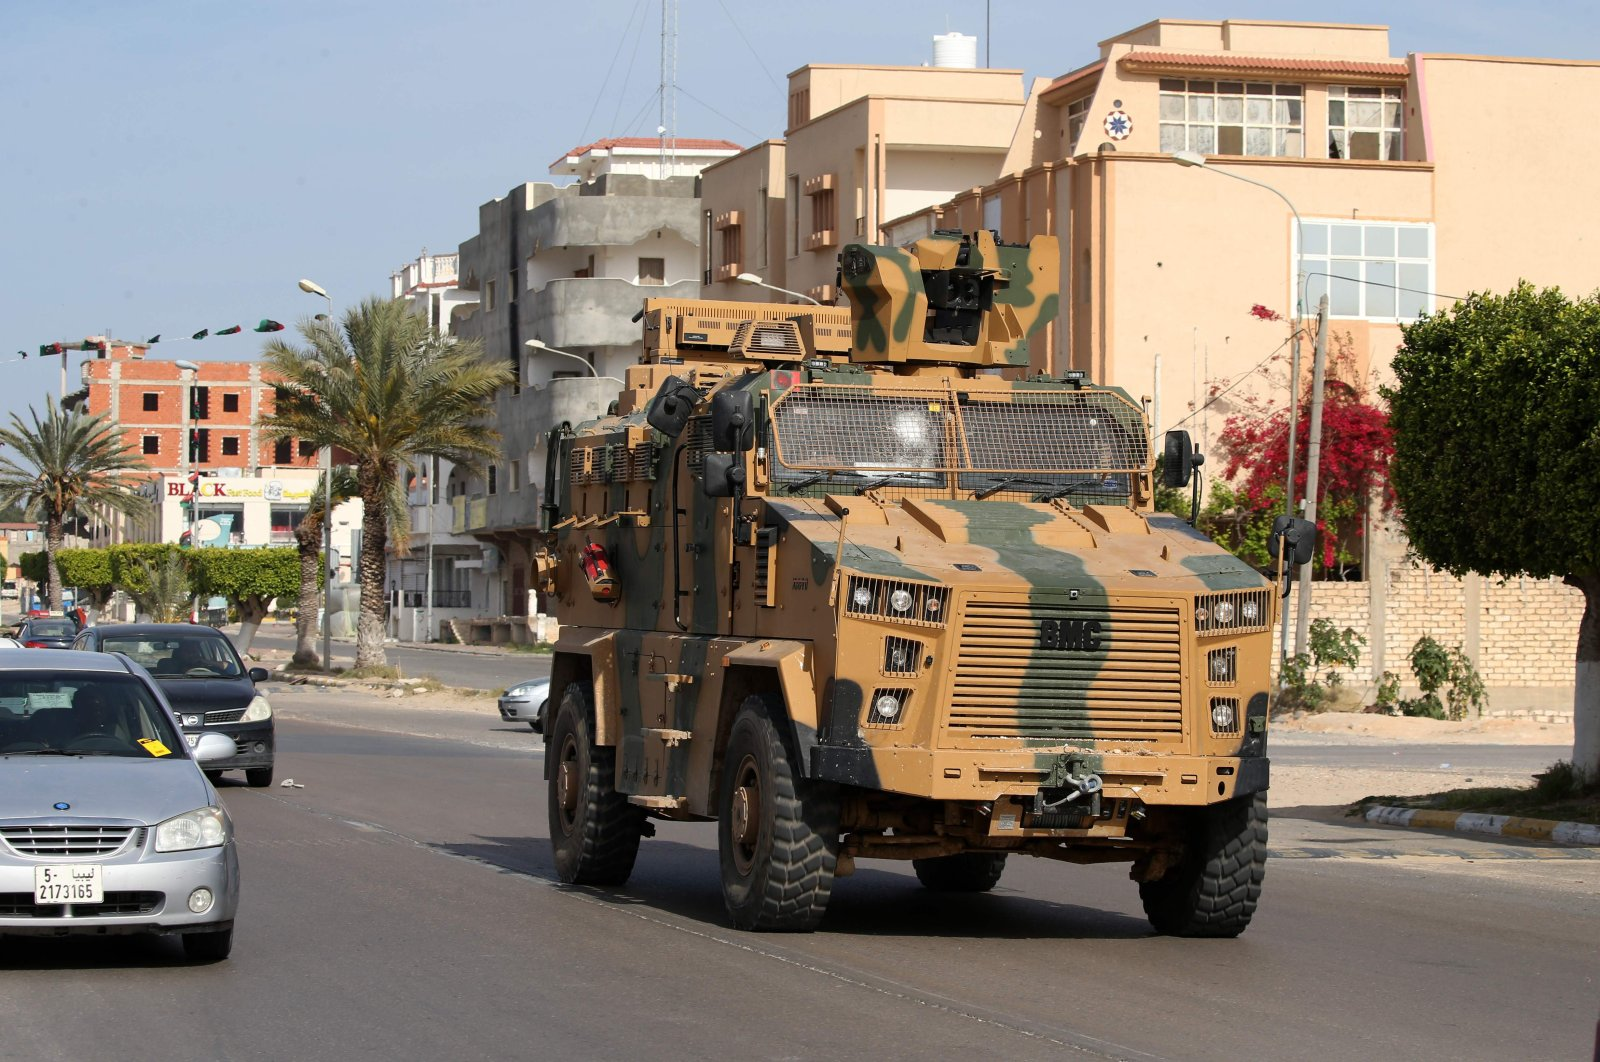 An armoured personnel vehicle drives down a street in the Libyan coastal city of Sorman on April 13, 2020, after Libya's unity government seized two coastal cities between Tripoli and the Tunisian border from troops backing putschist Gen. Khalifa Haftar. (AFP Photo)